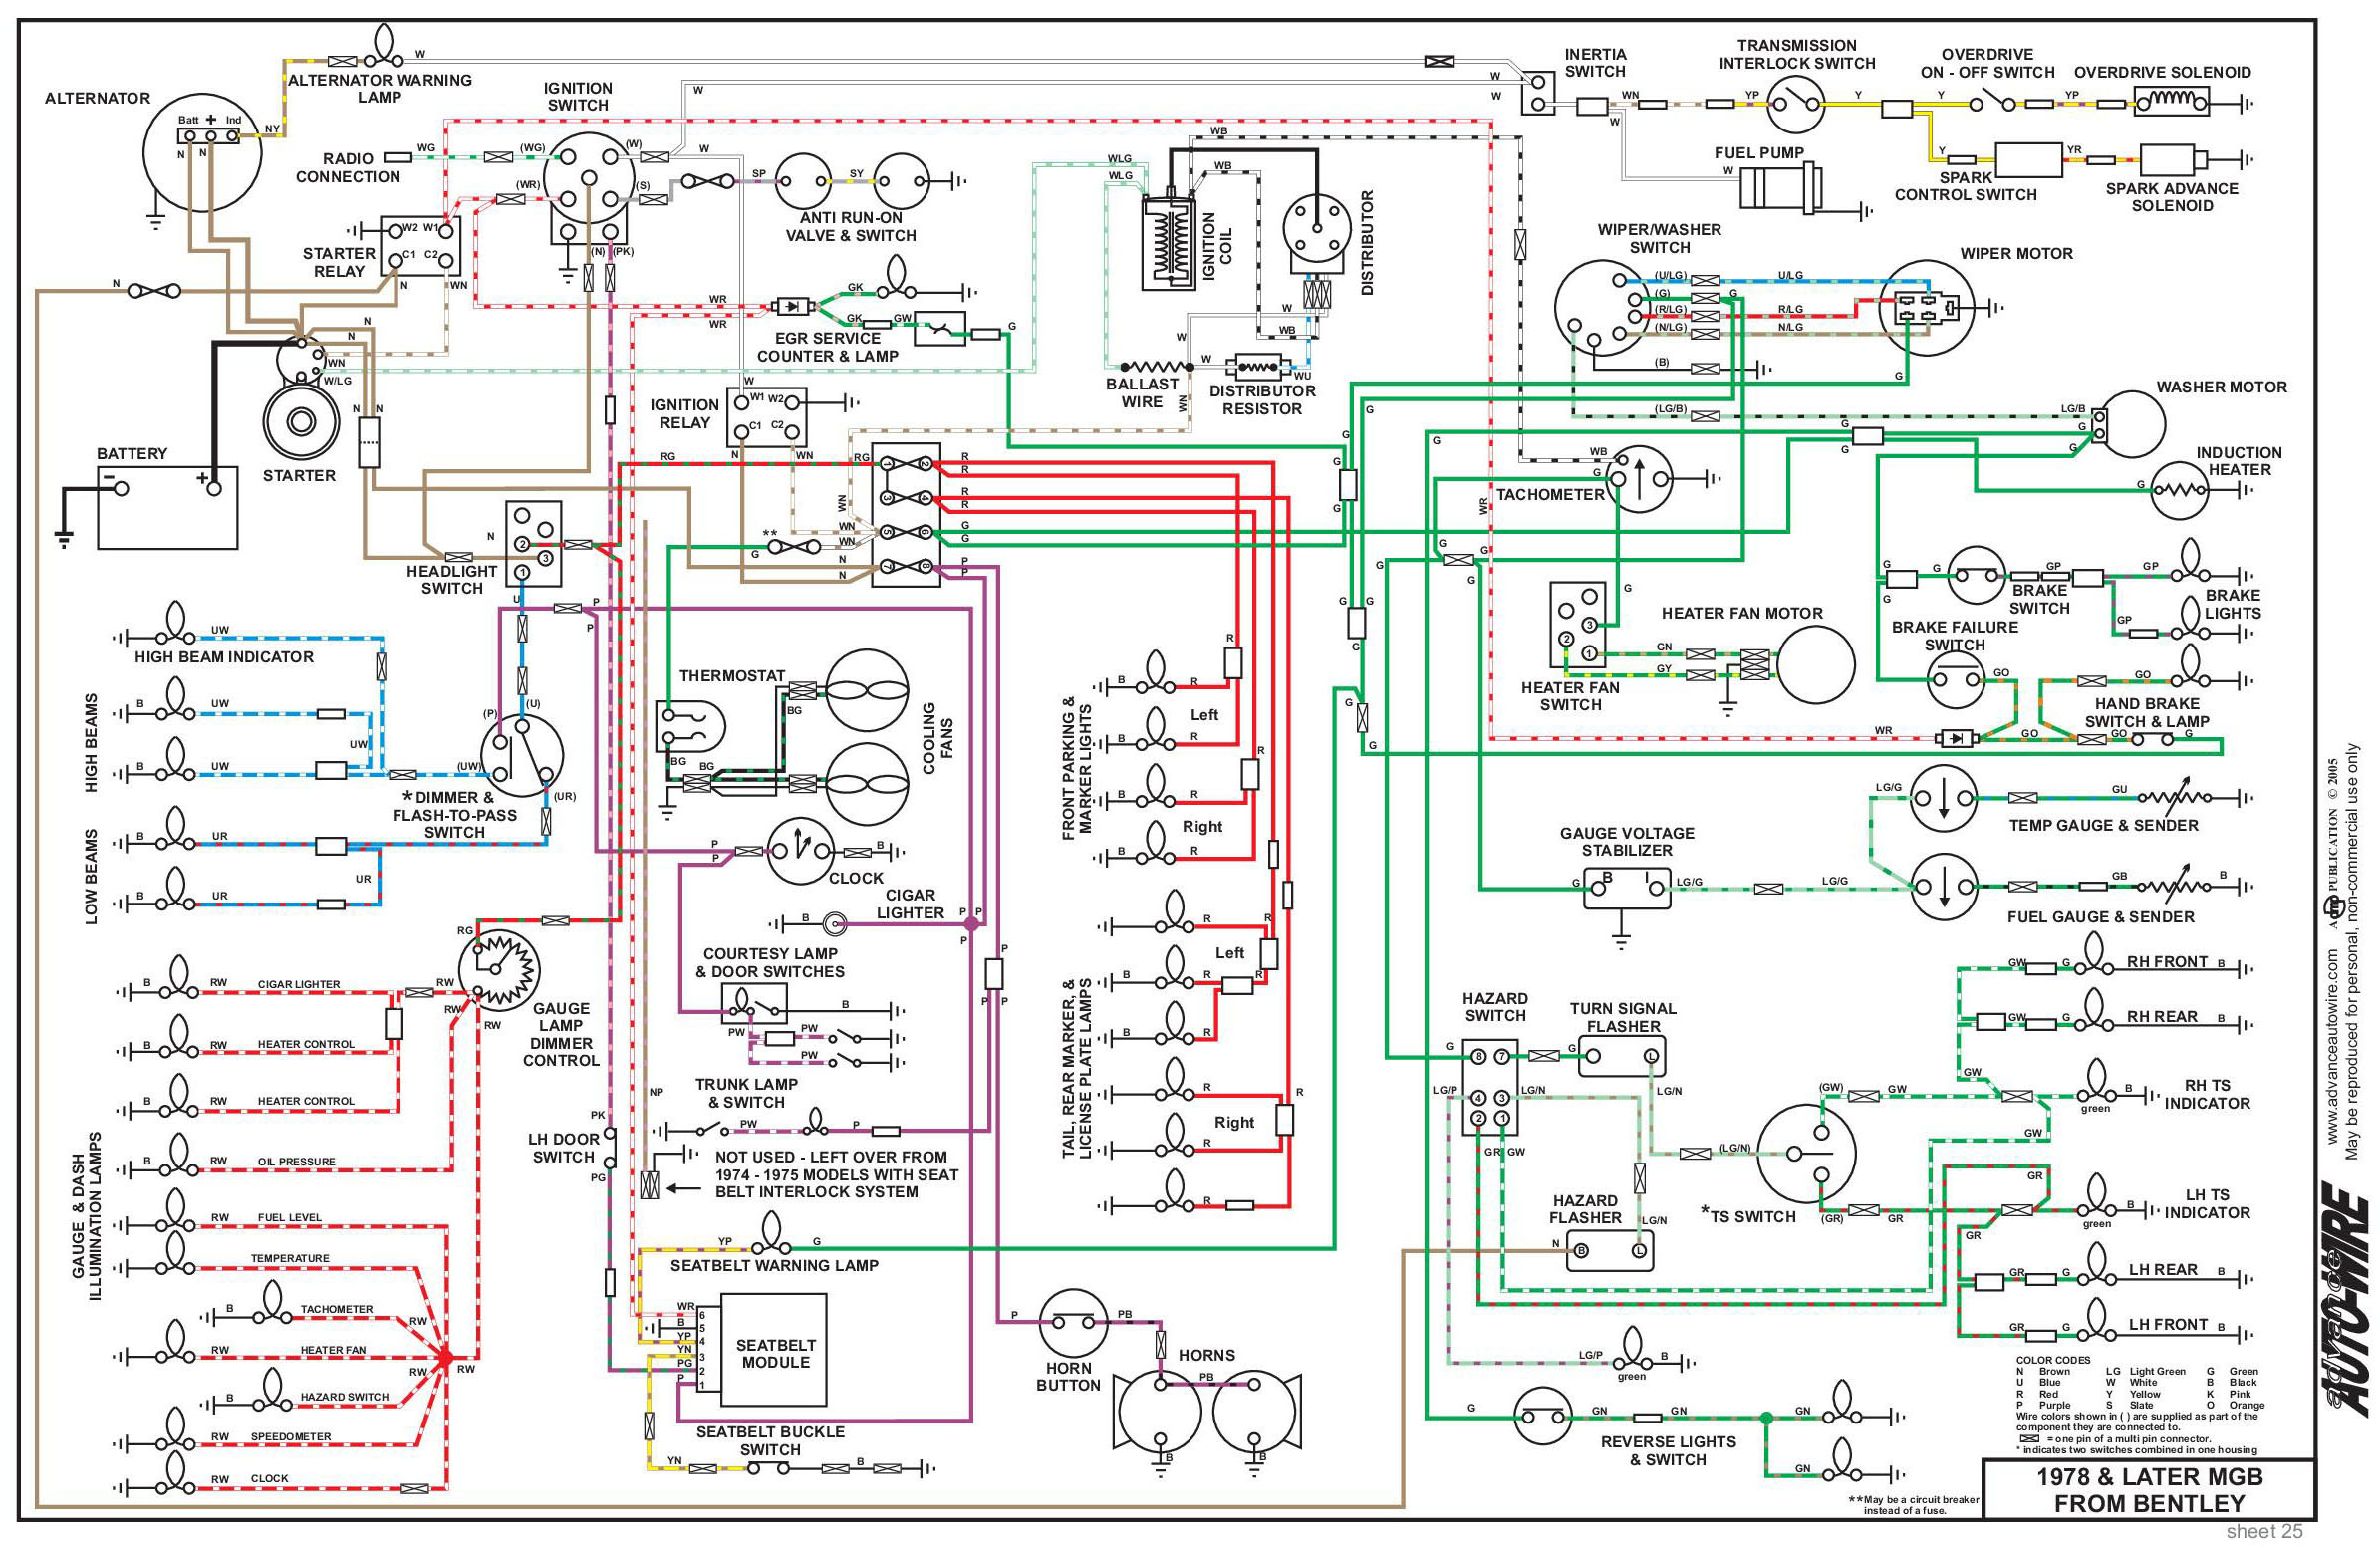 Mgb Wiring Diagram - Wiring Diagrams Thumbs - Mgb Wiring Diagram